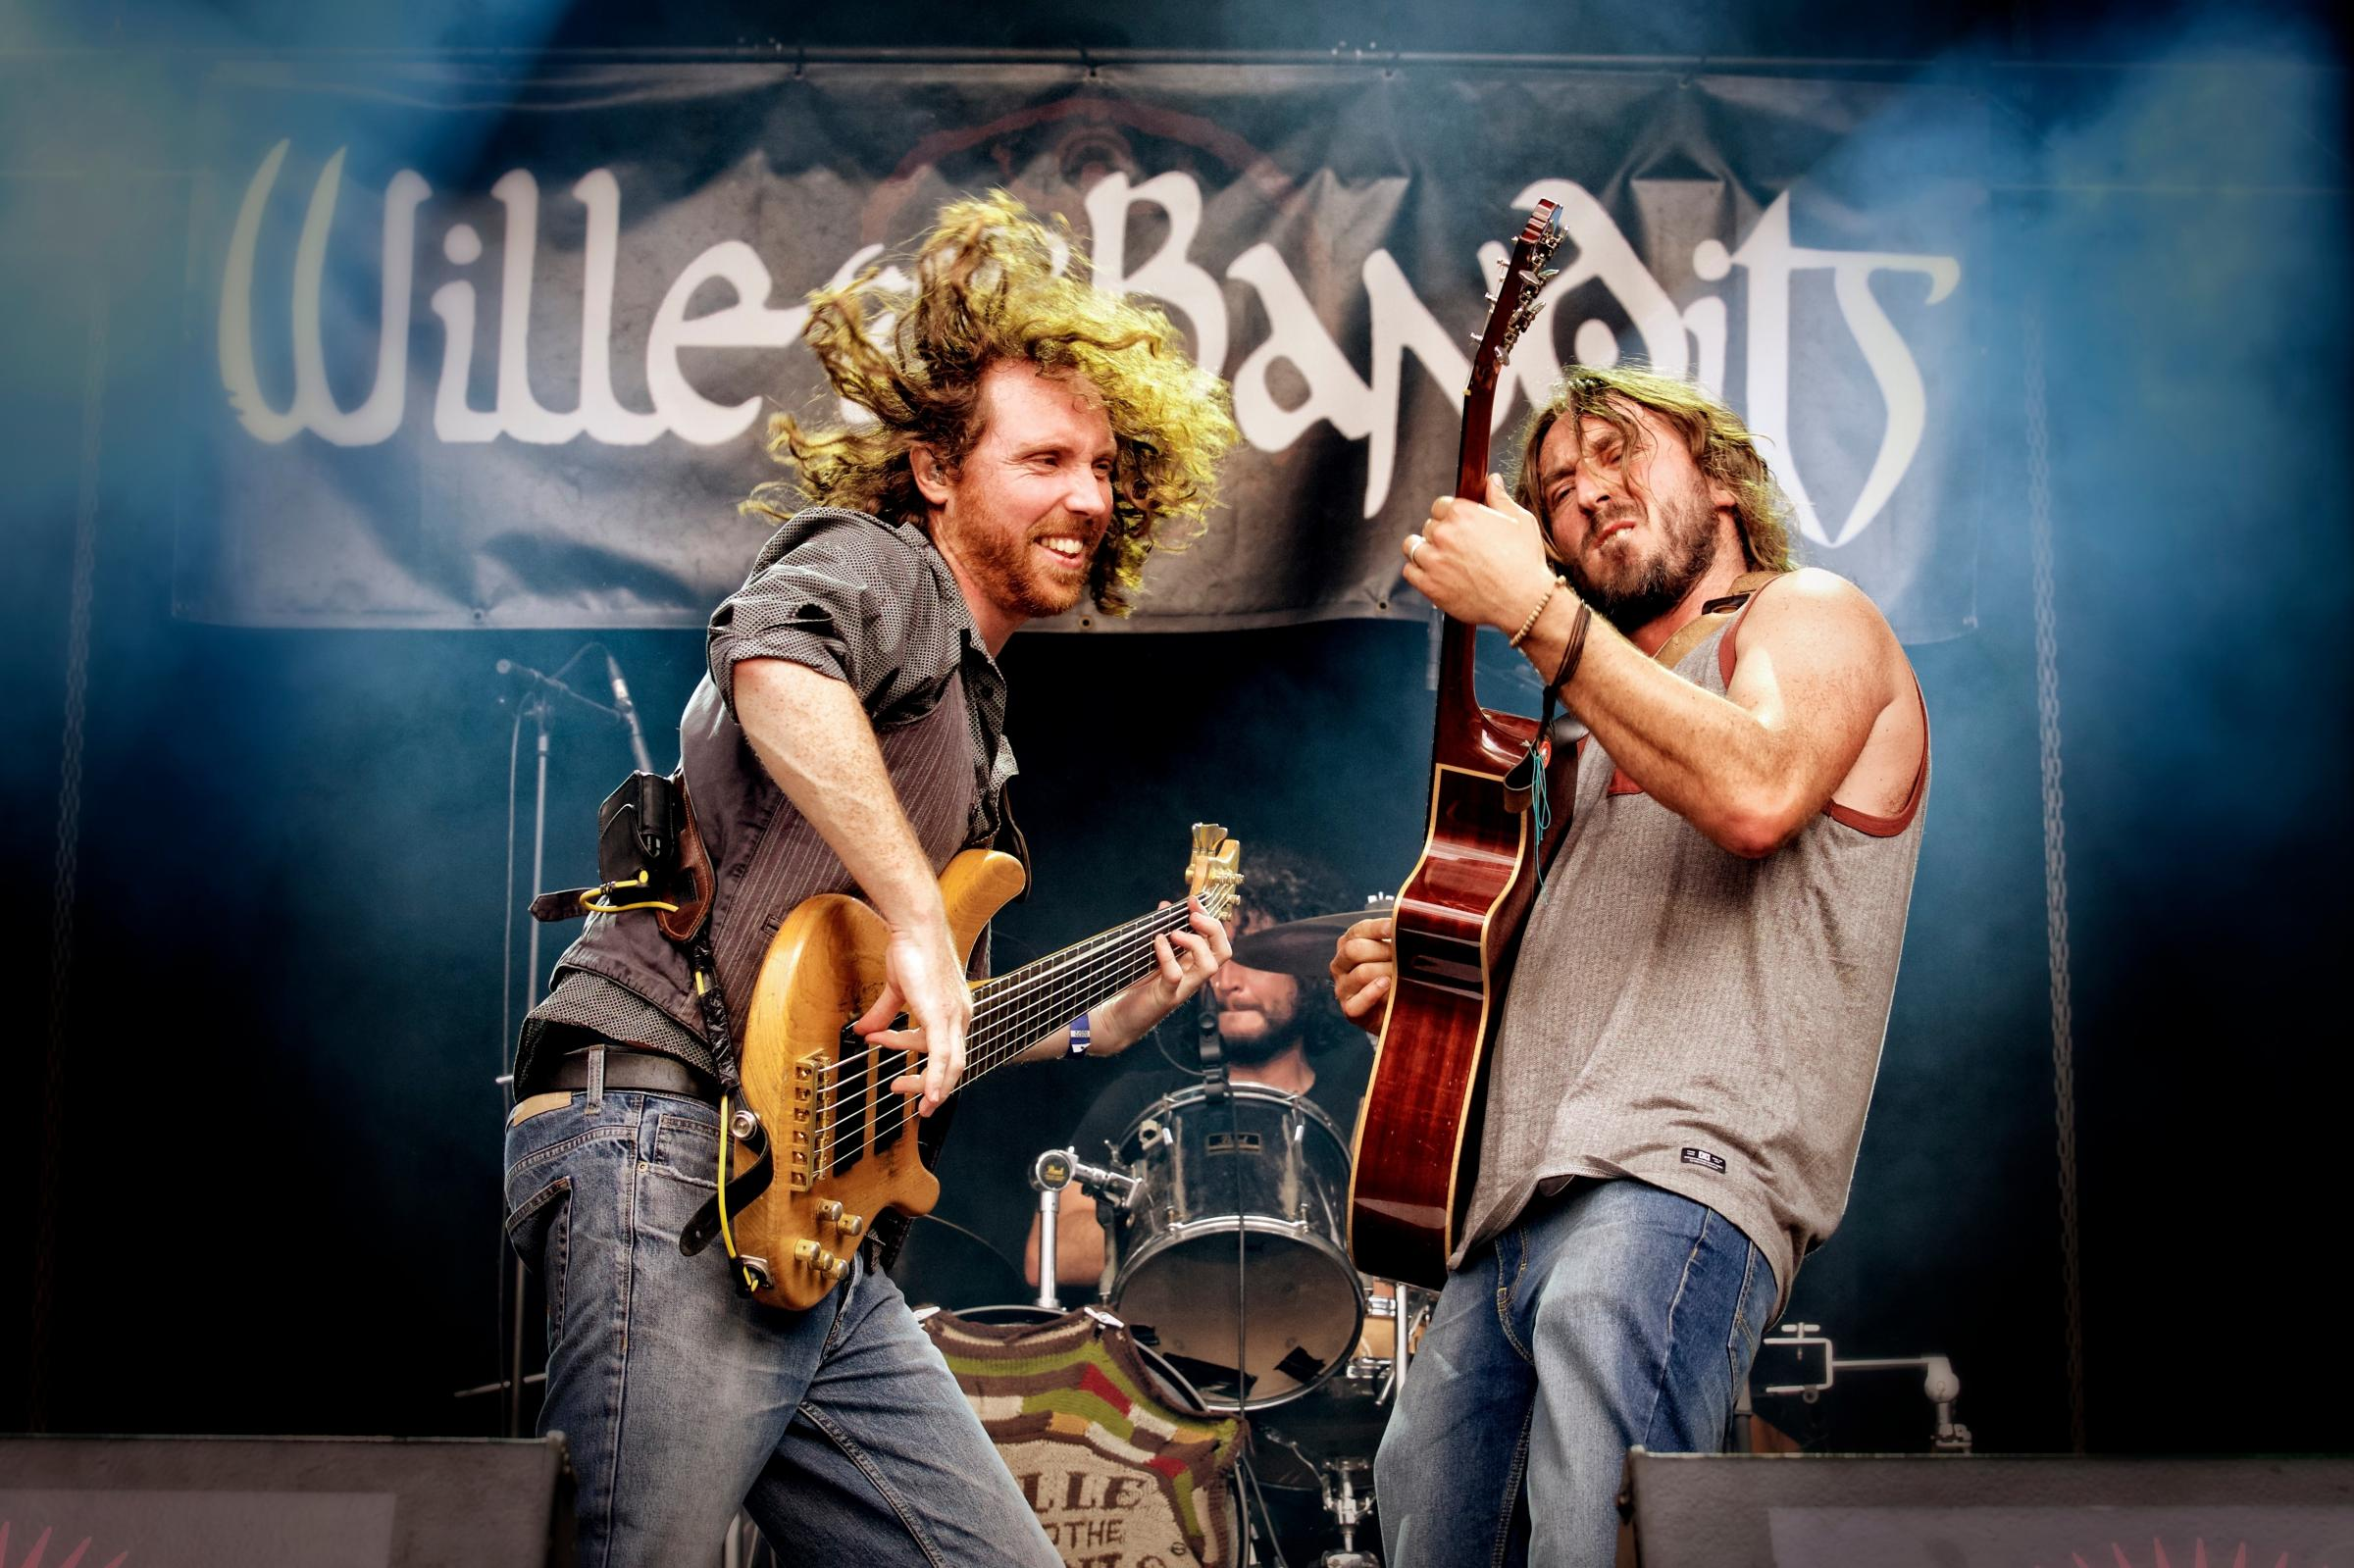 Wille and the Bandits - in a pensive mood